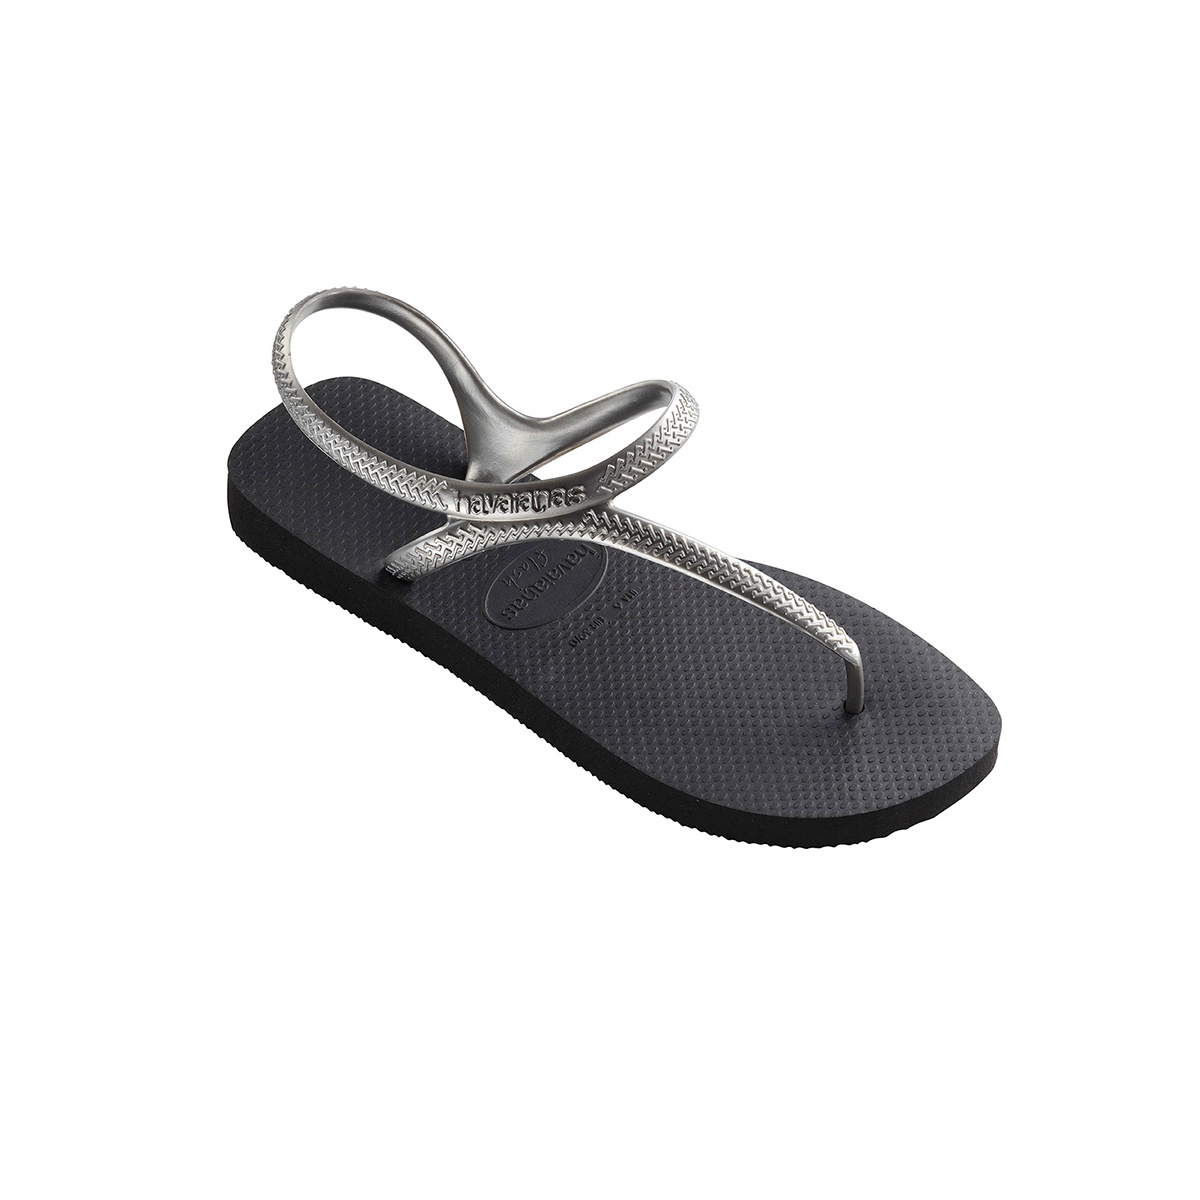 ecc956dcc5d5a Havaianas Flash Urban - Black Silver - Out There Surf